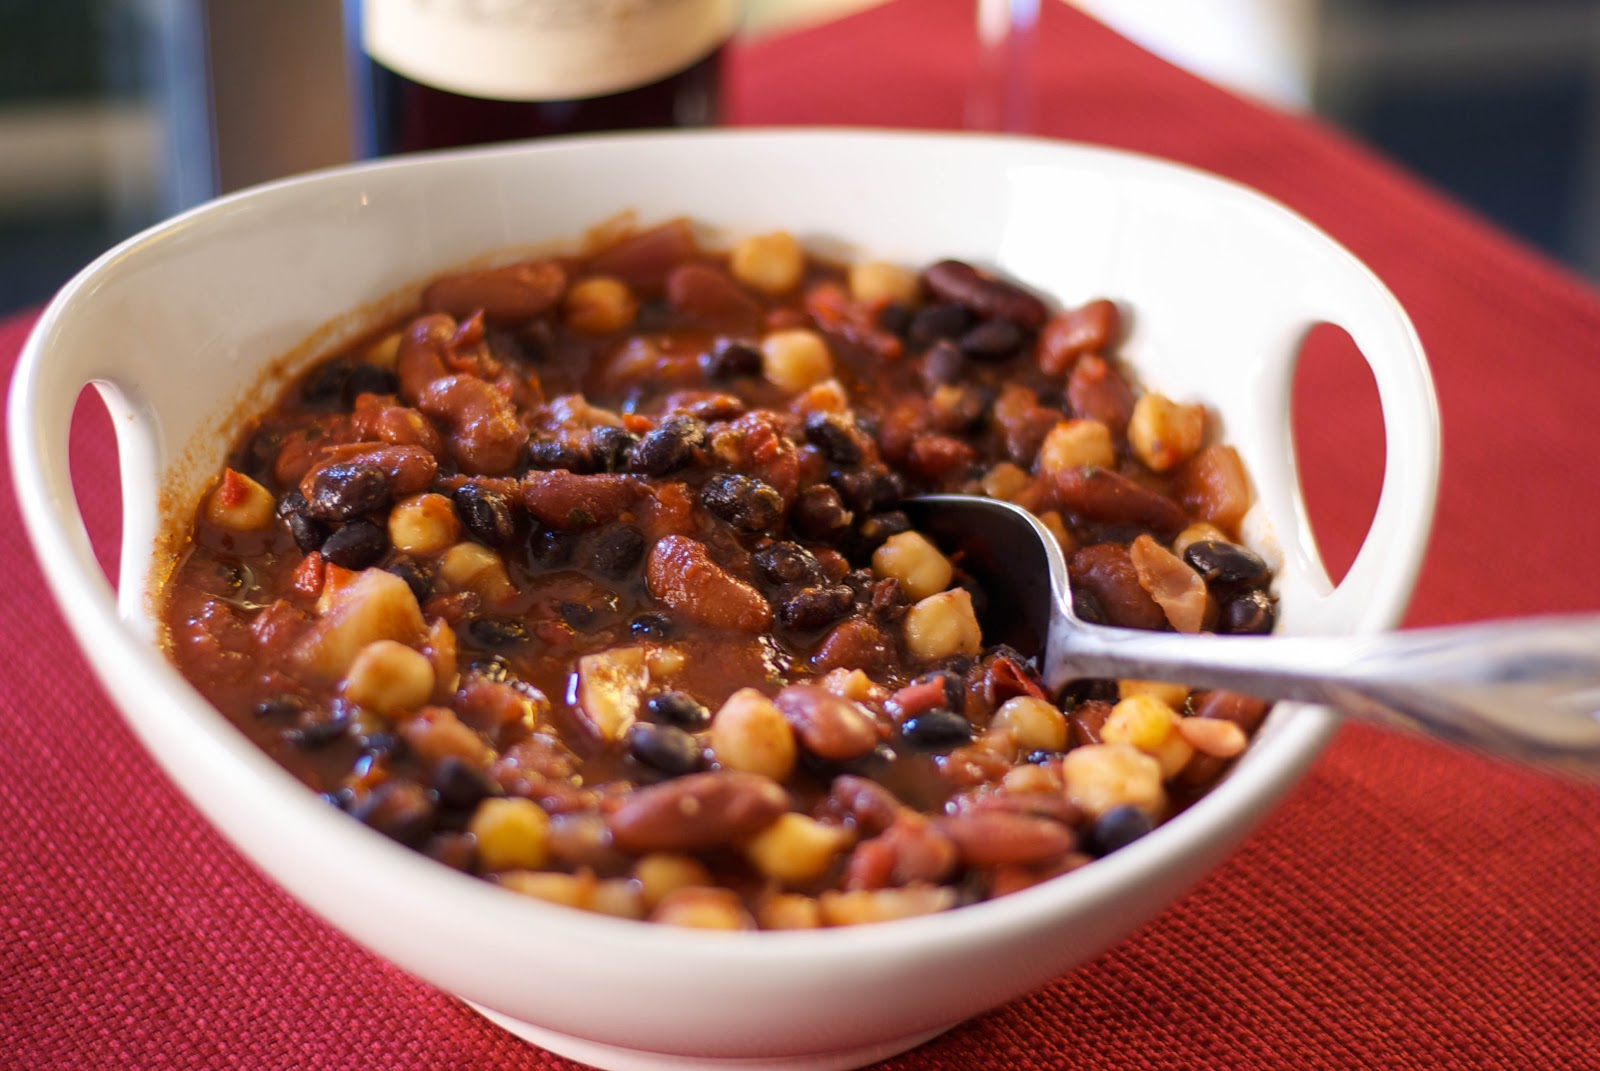 Carrie's Experimental Kitchen: Roasted Fennel & 3 Bean Chili